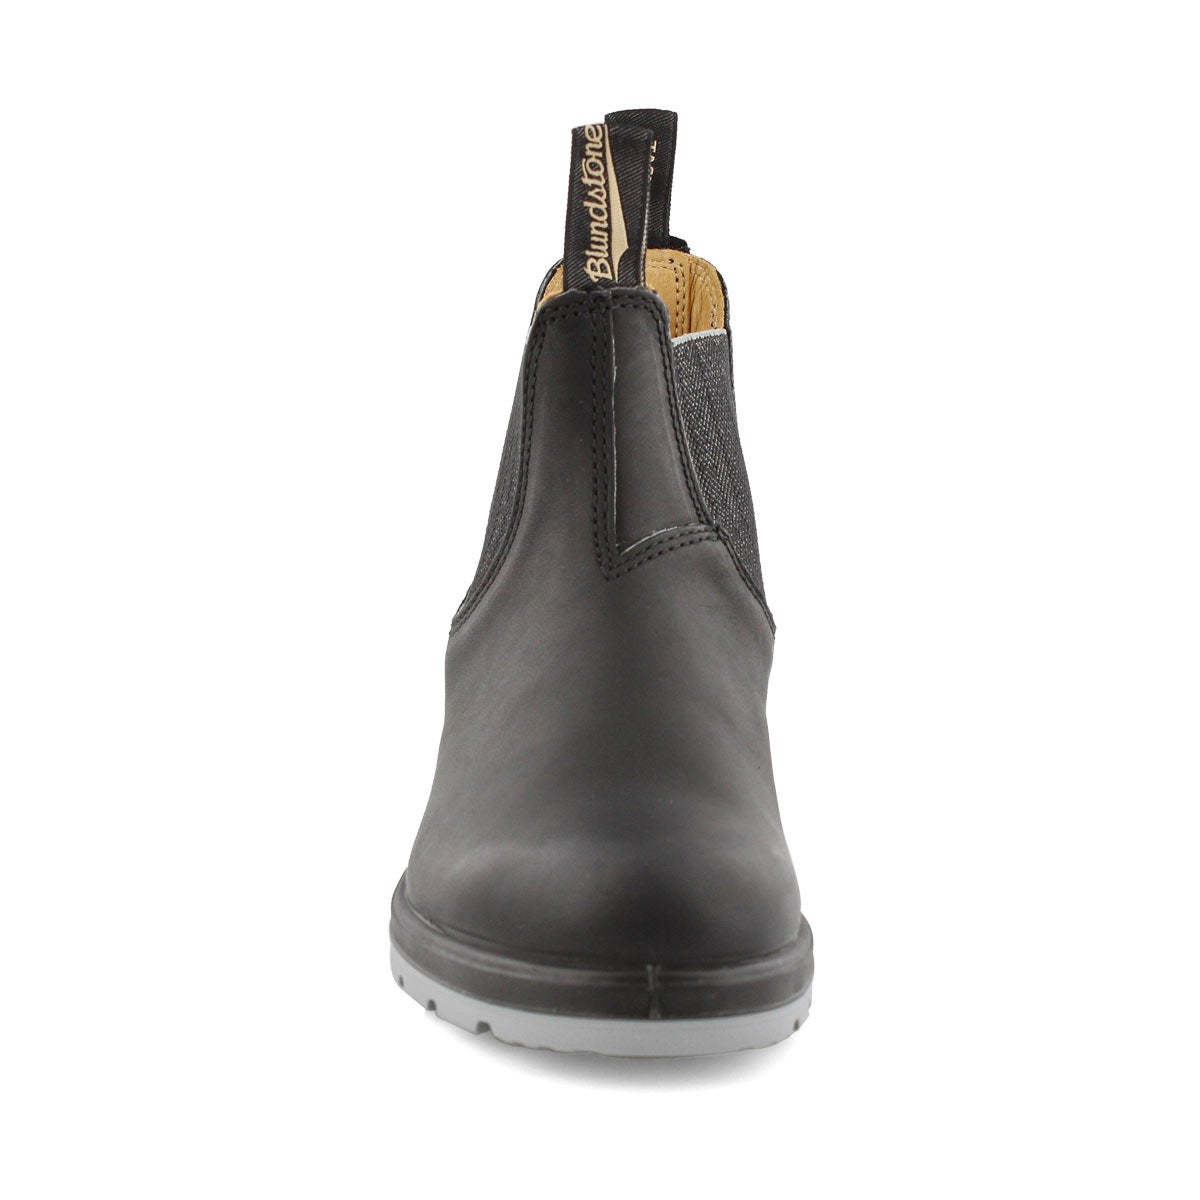 Botte Leather Lined, nr, unisexe